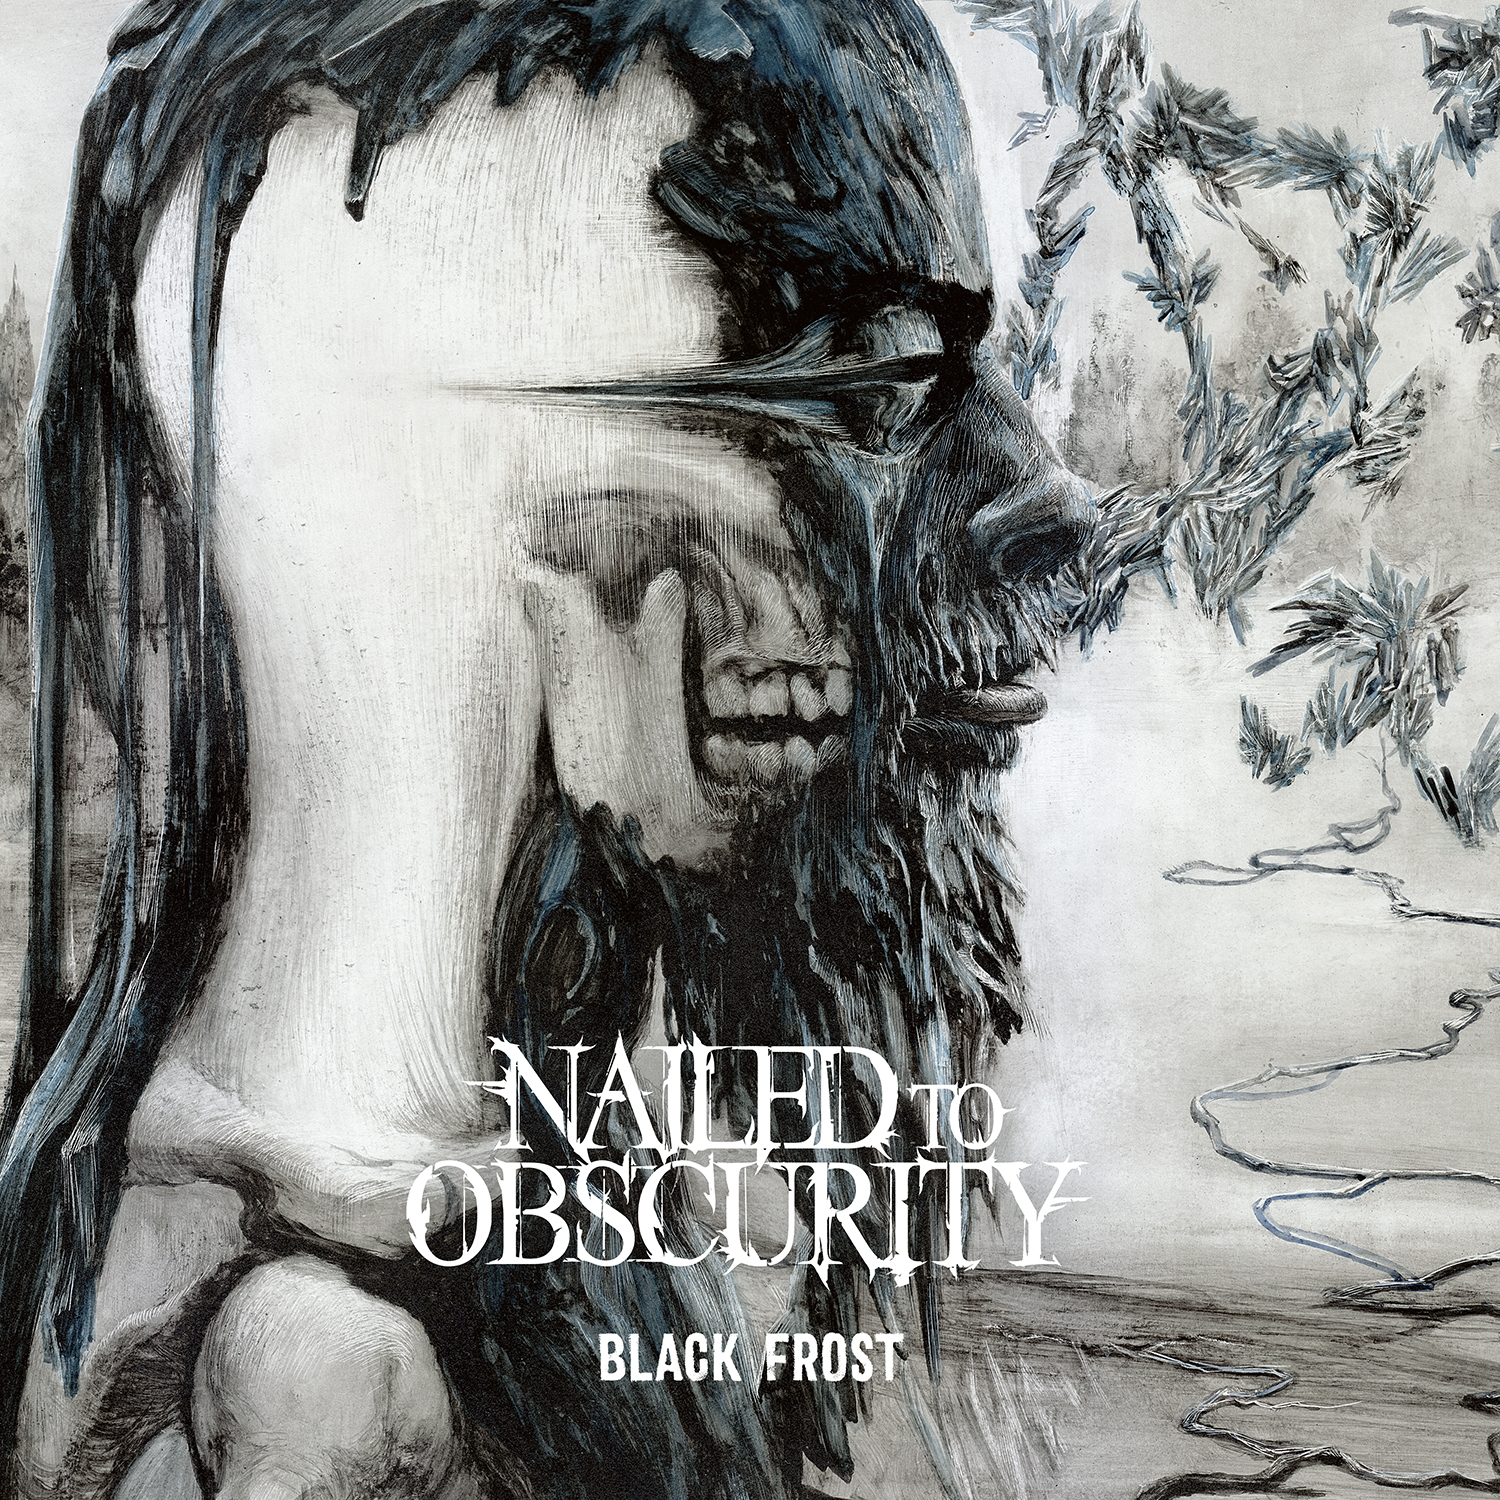 cd-review-nailed-to-obscurity-black-frost-angst-essen-seele-auf